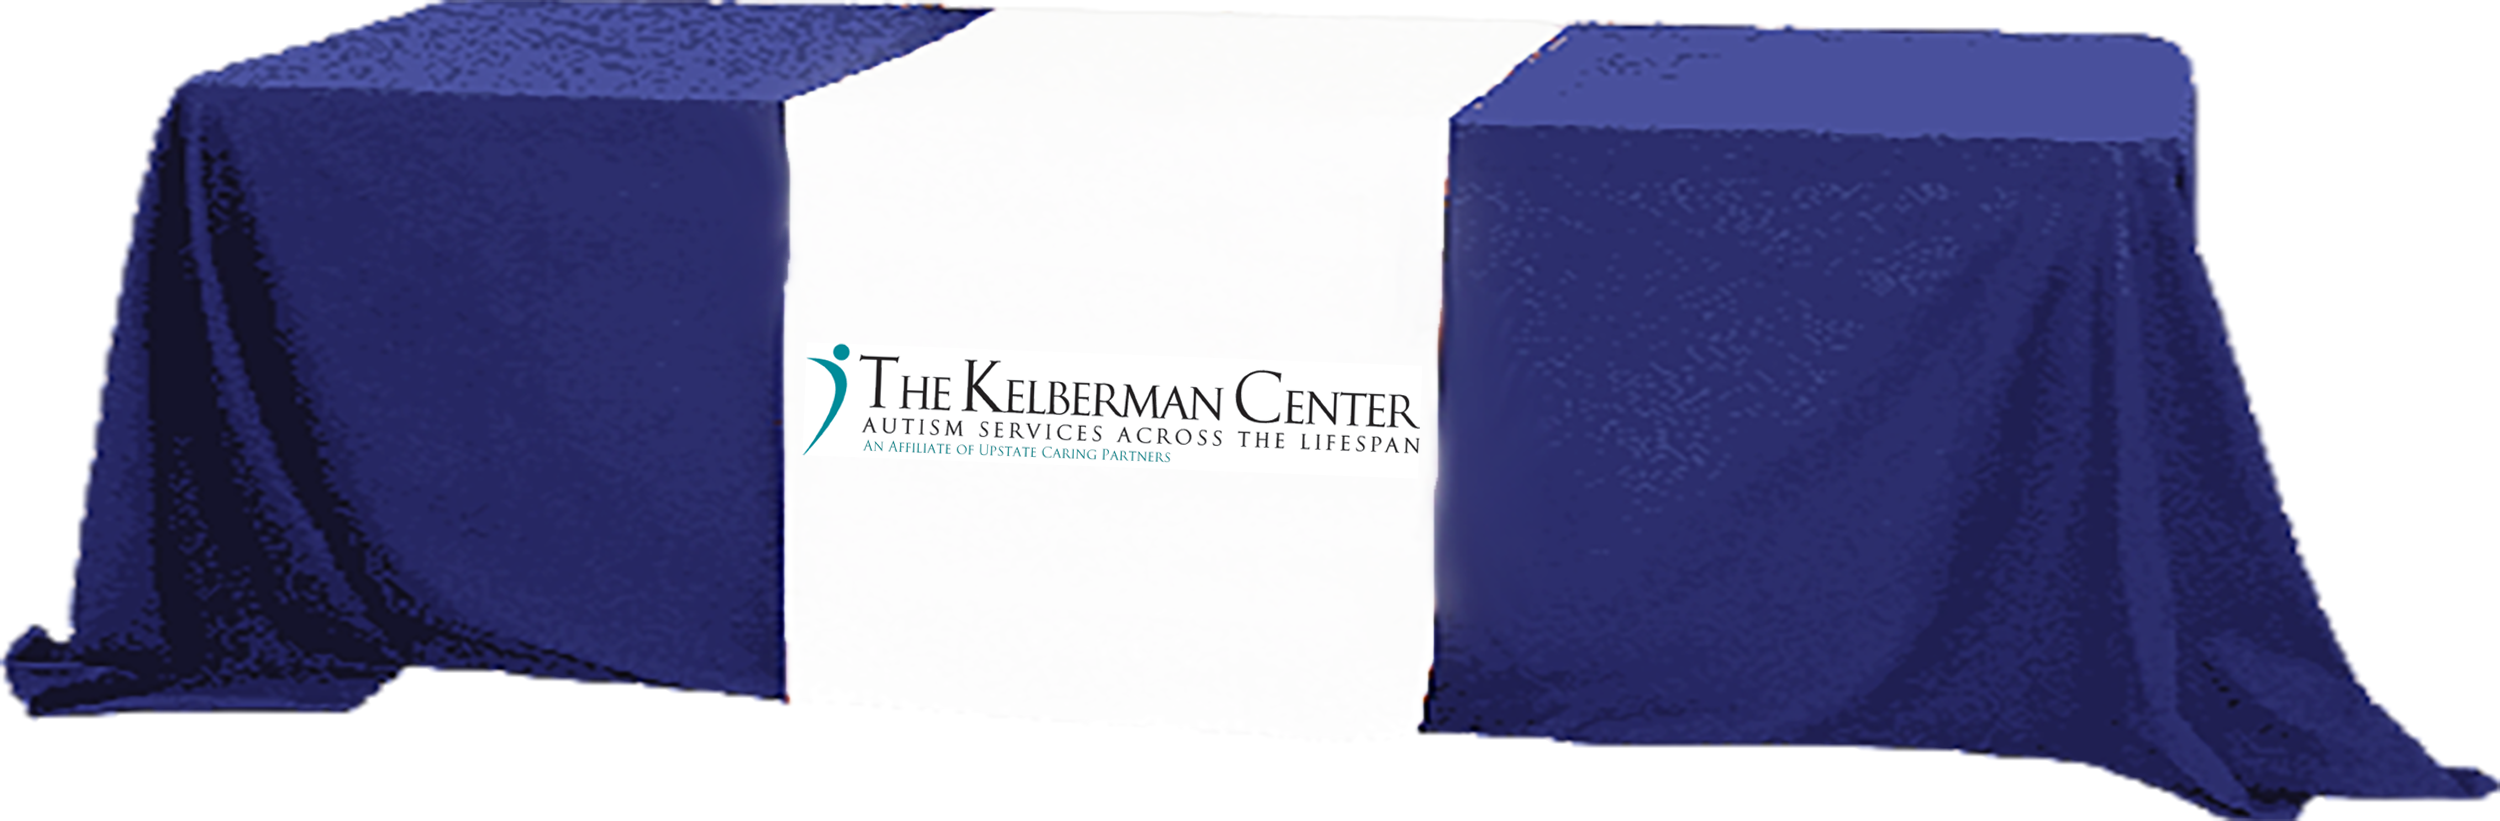 Kelberman Center logo on a table cover over a table image